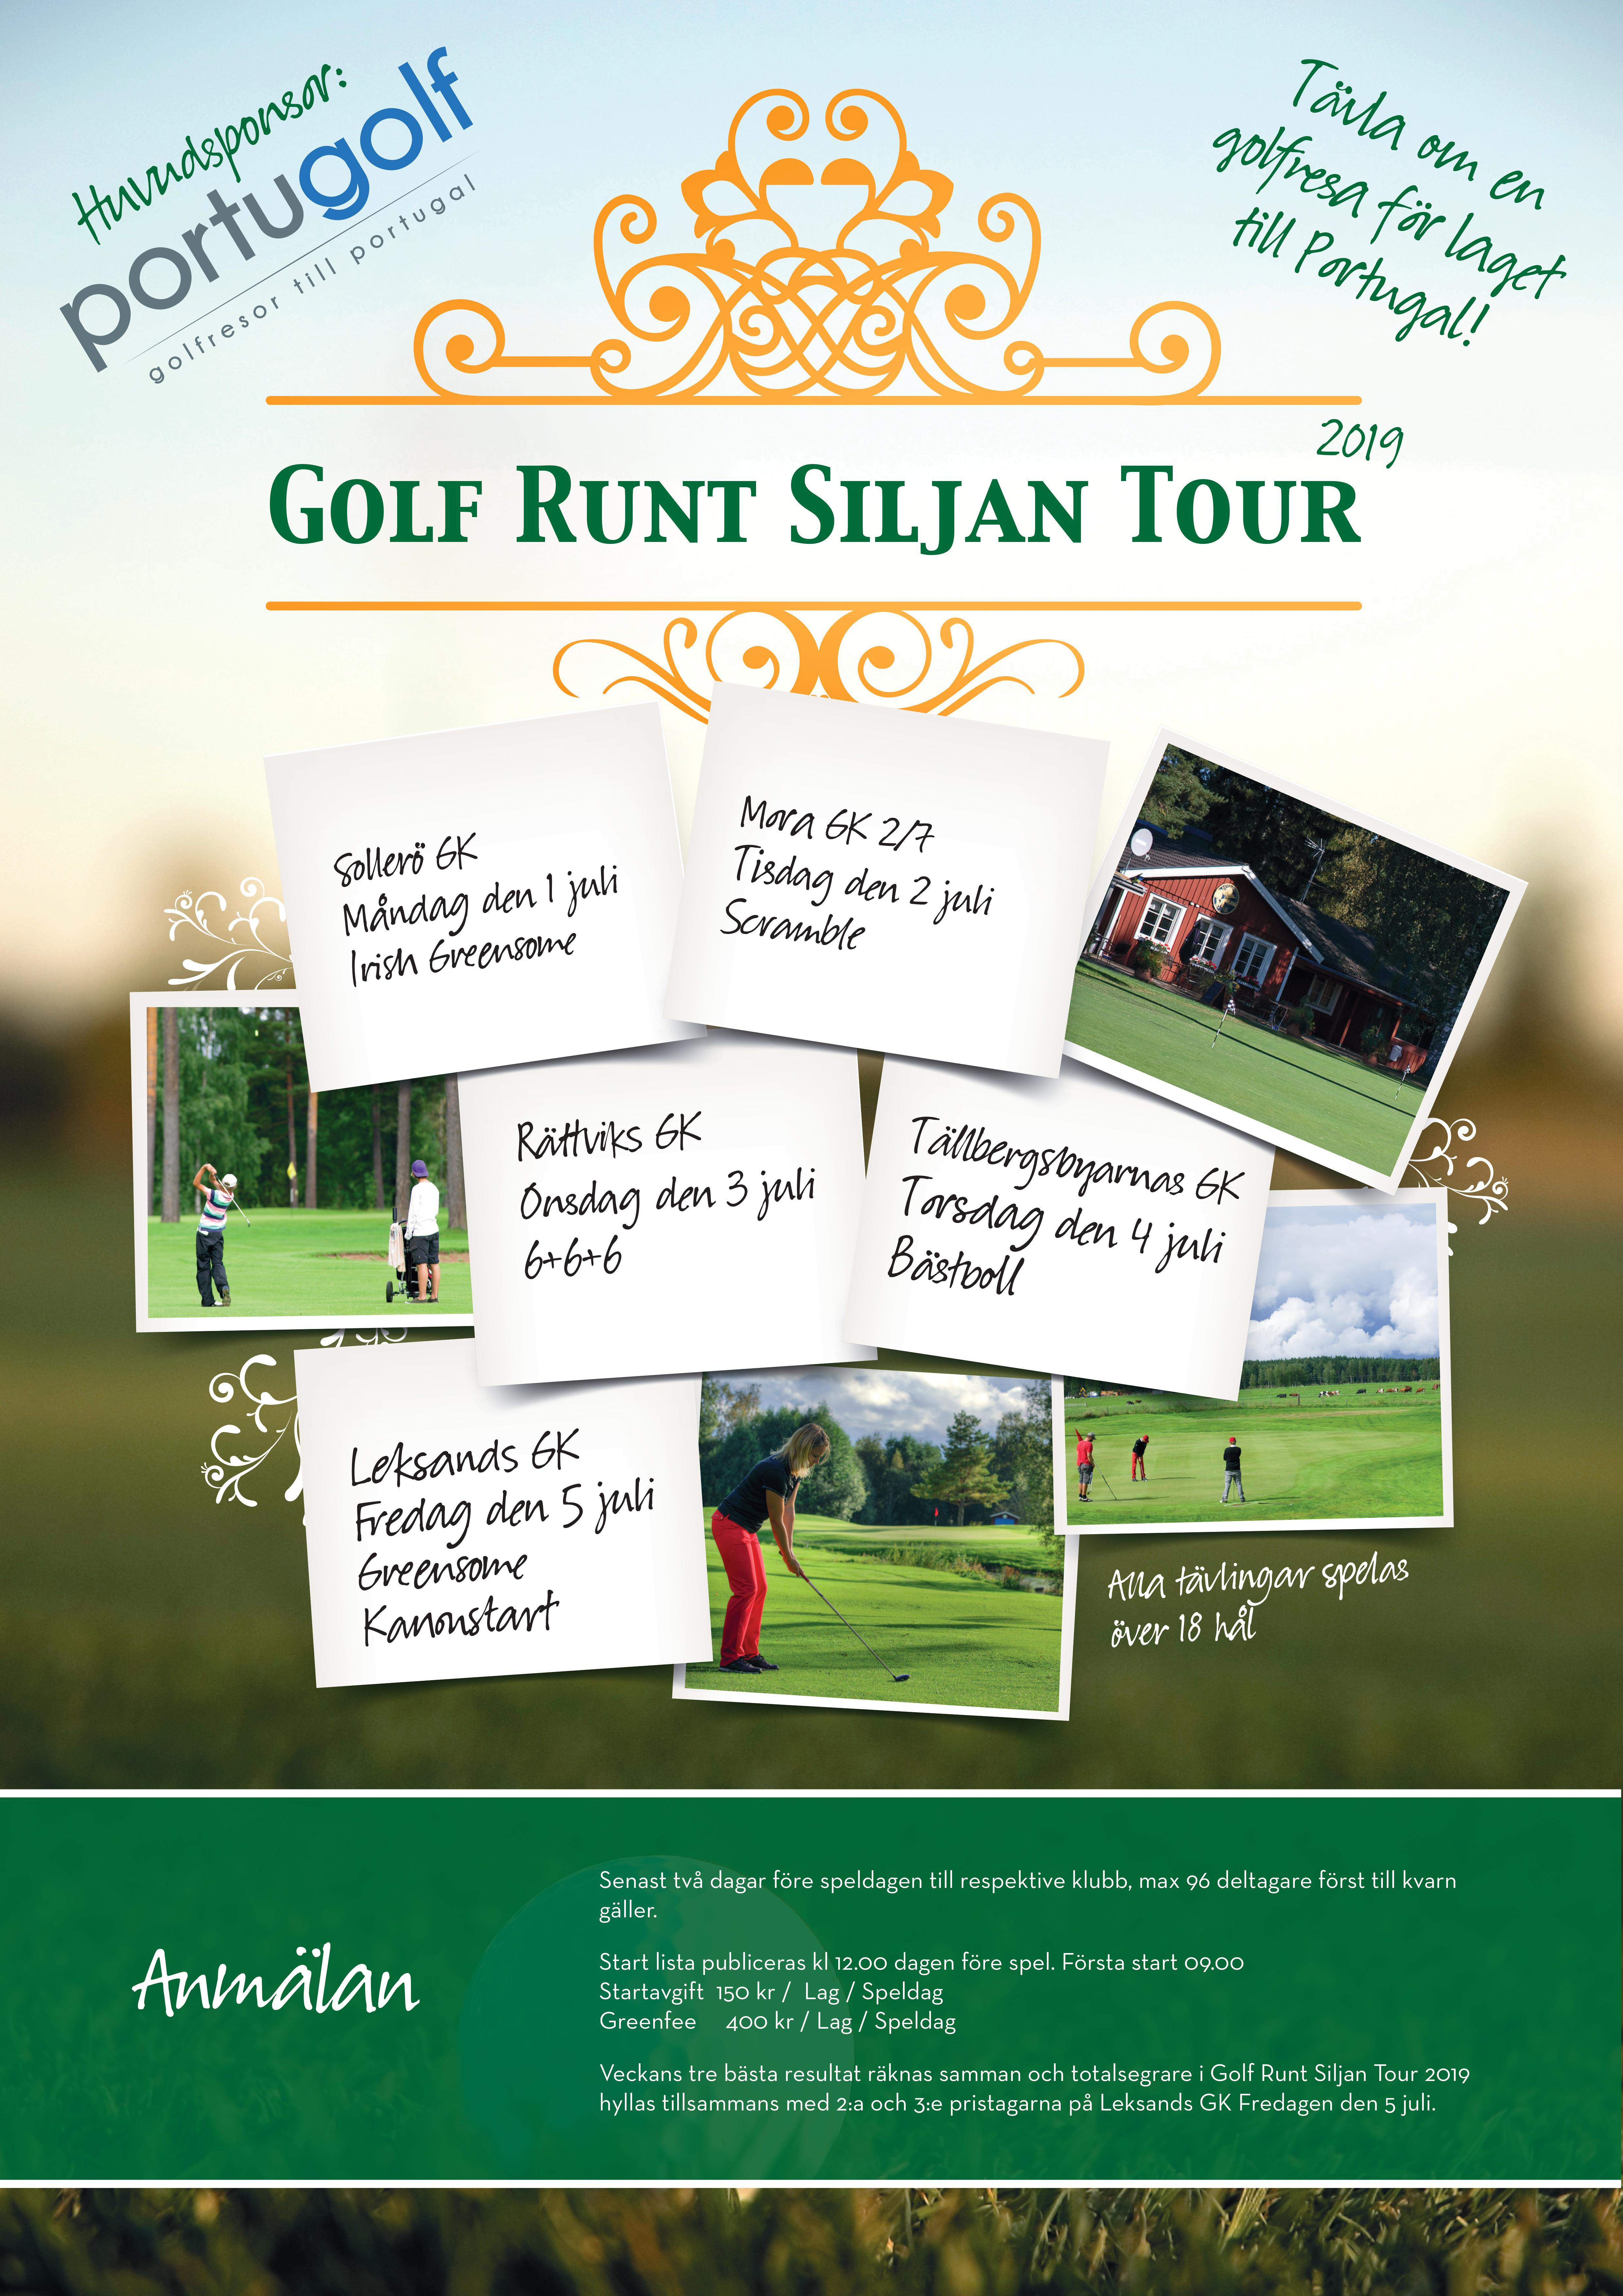 golf-runt-siljan-tour